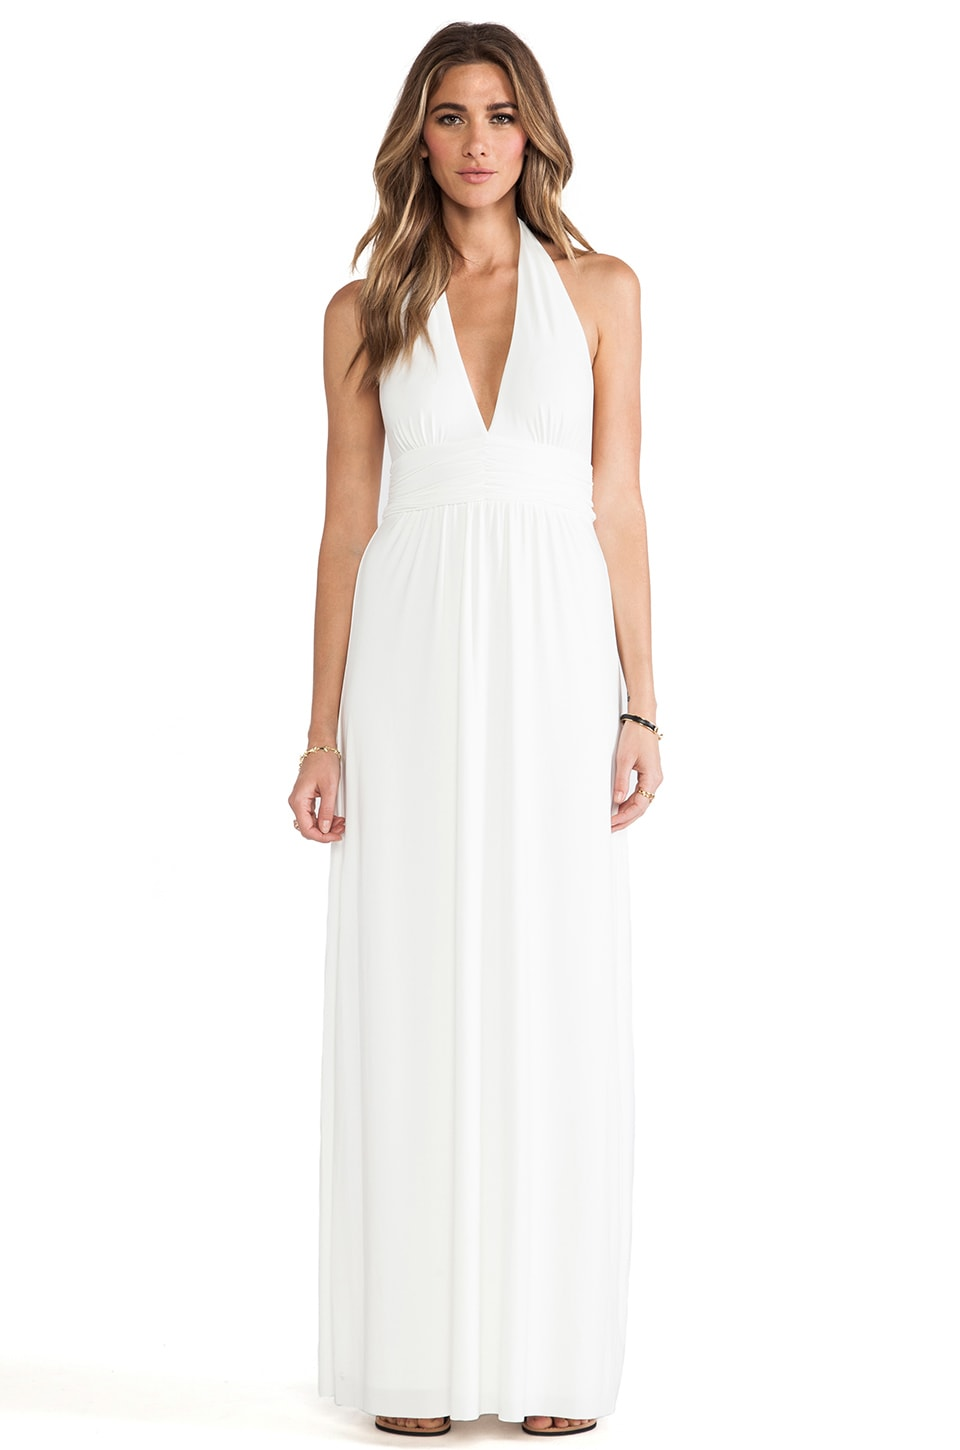 T-Bags LosAngeles Plunging Halter Maxi Dress in White